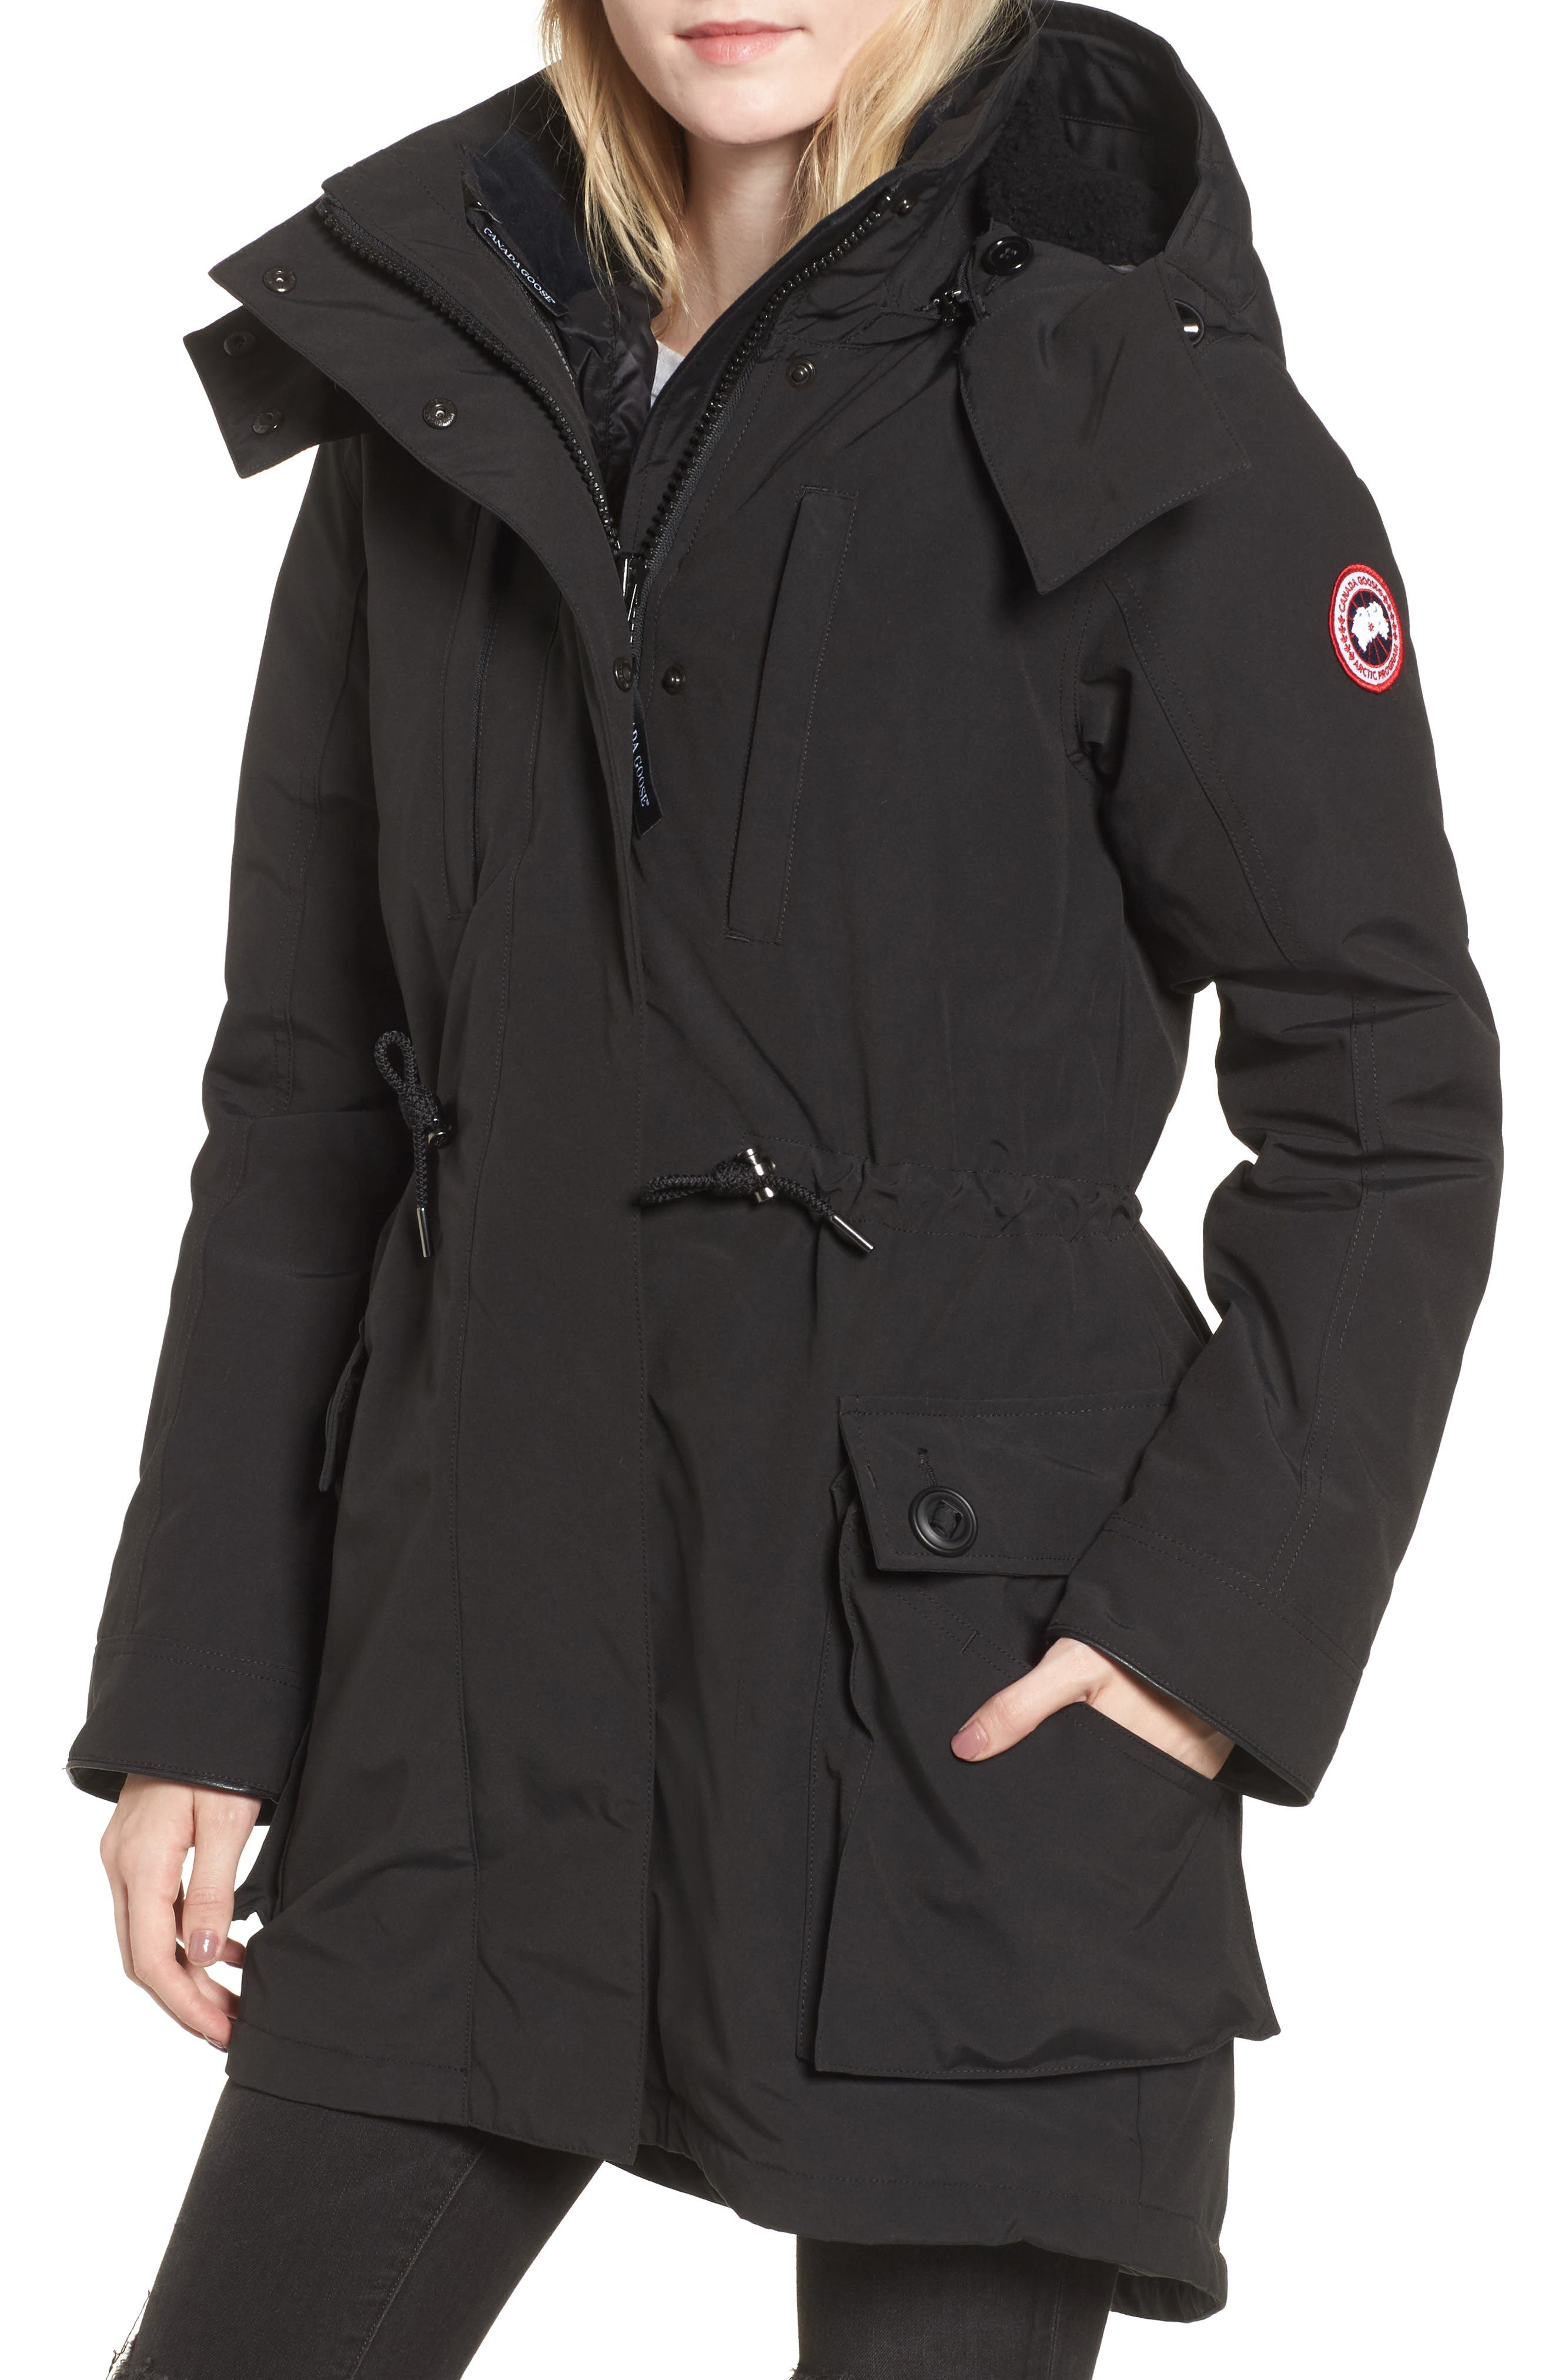 Canada Goose: Women's, Men's & Kids' Jackets | Nordstrom